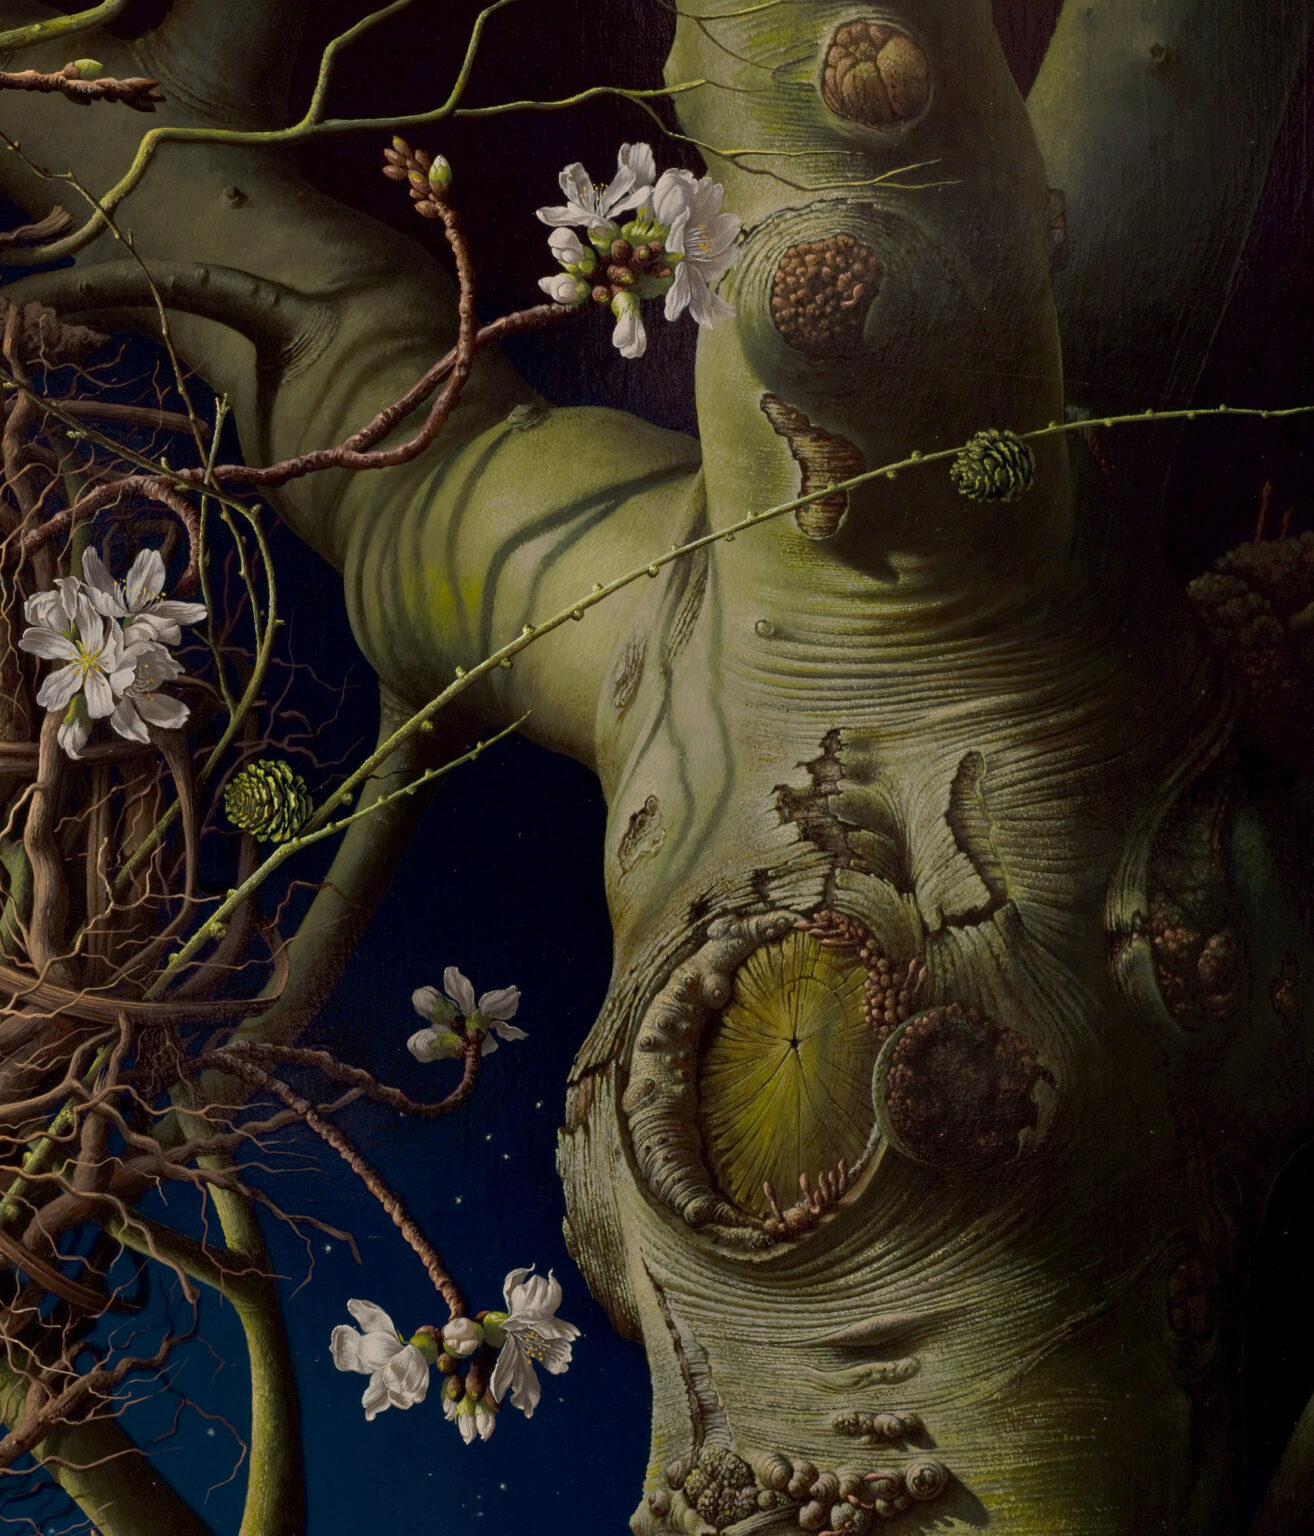 THE-WITCHING-HOUR--giclee-print-detail 2-Miriam-Escofet